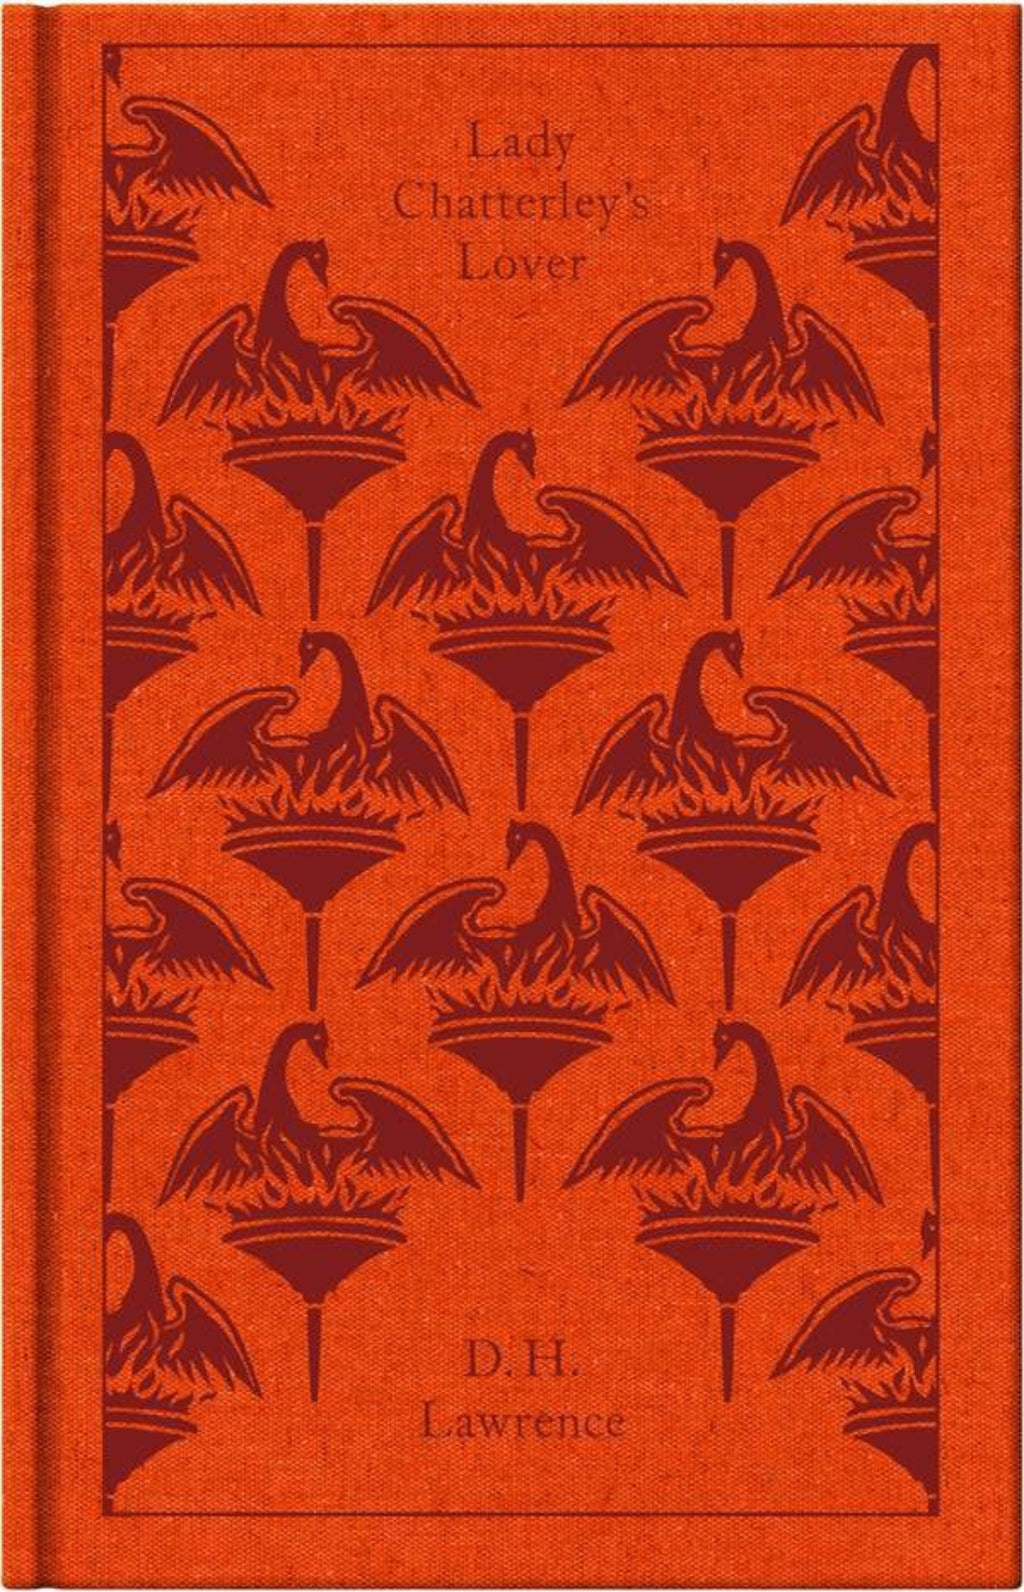 Lady Chatterley's Lover - Penguin Clothbound Classics